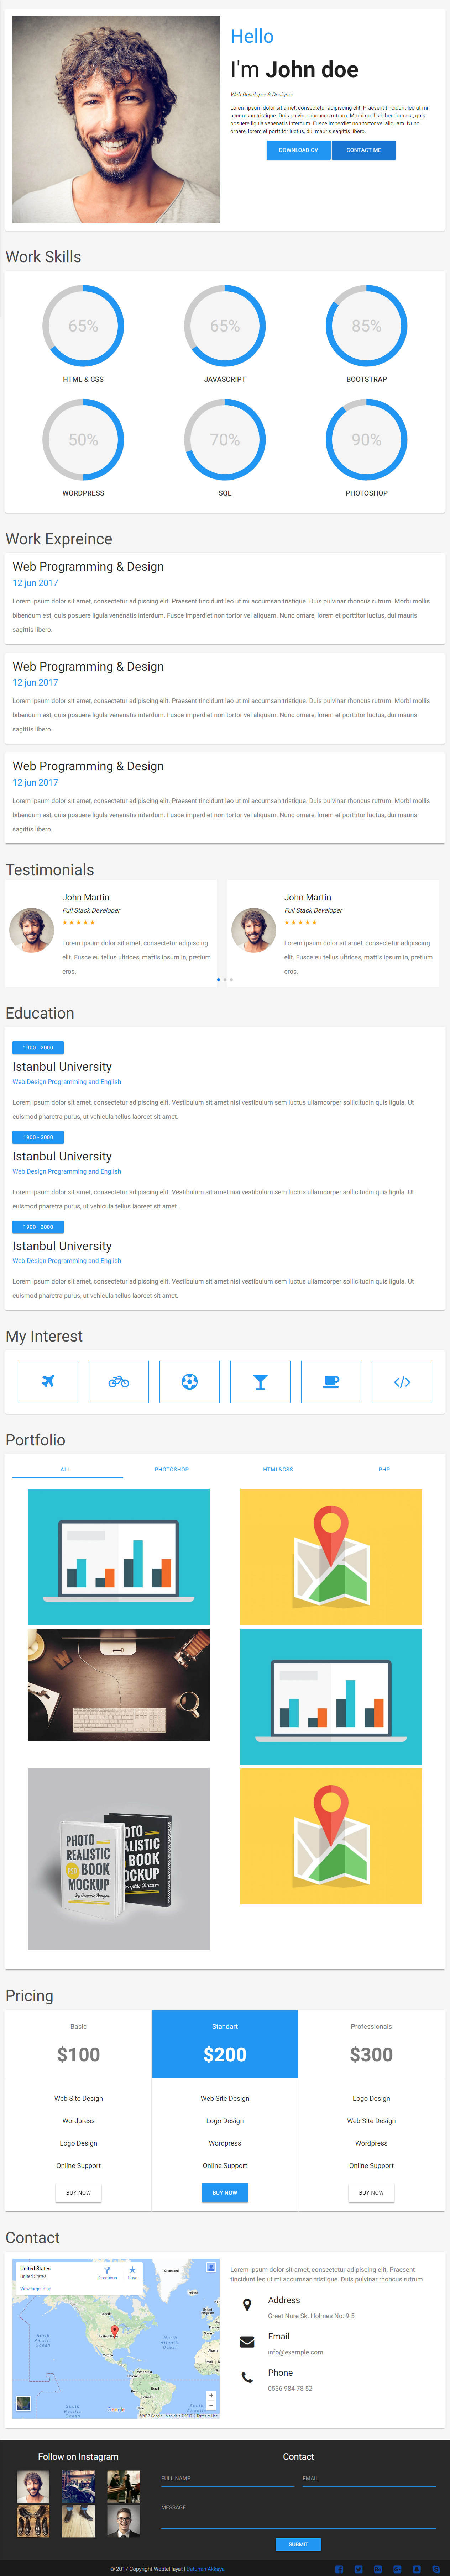 material cv premium responsive resume and cv html template optimised for desktop